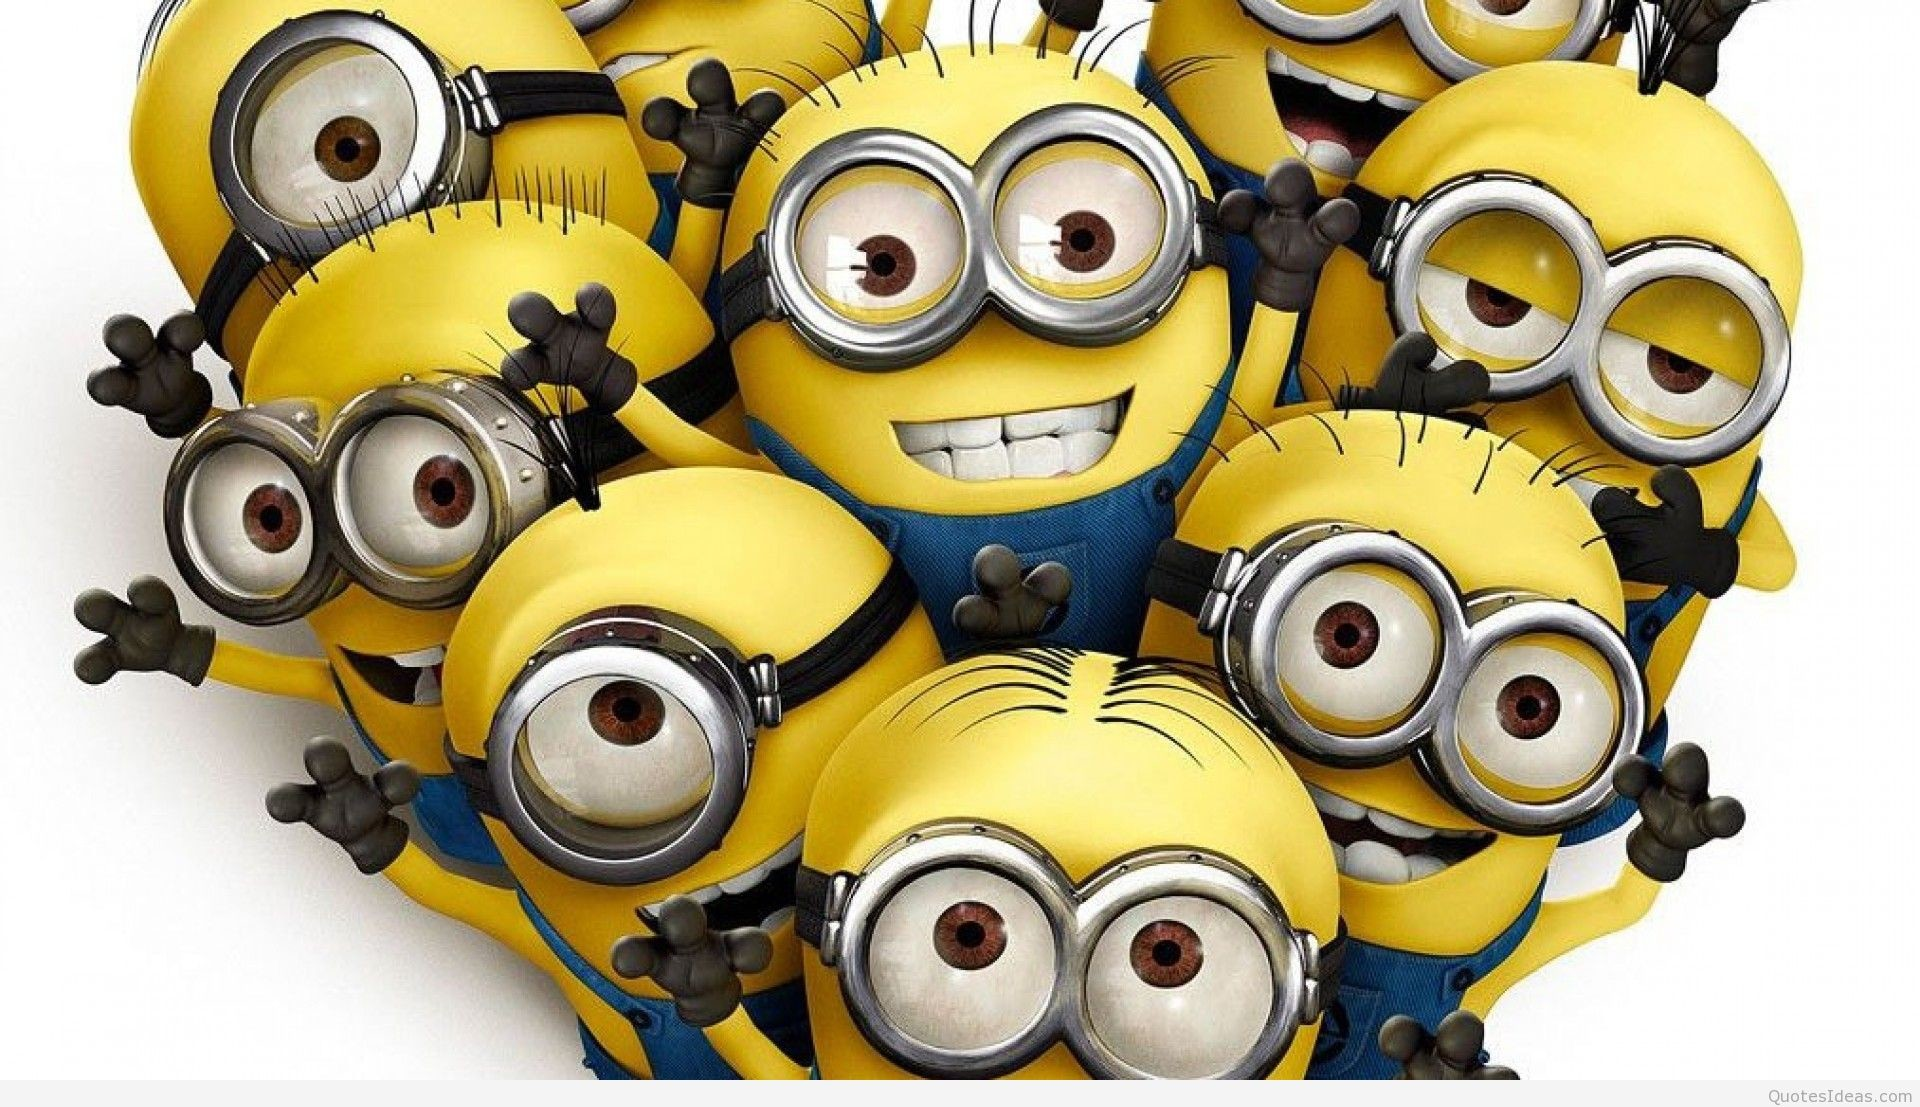 1920x1107 Funny mobile iphone minions wallpapers backgrounds